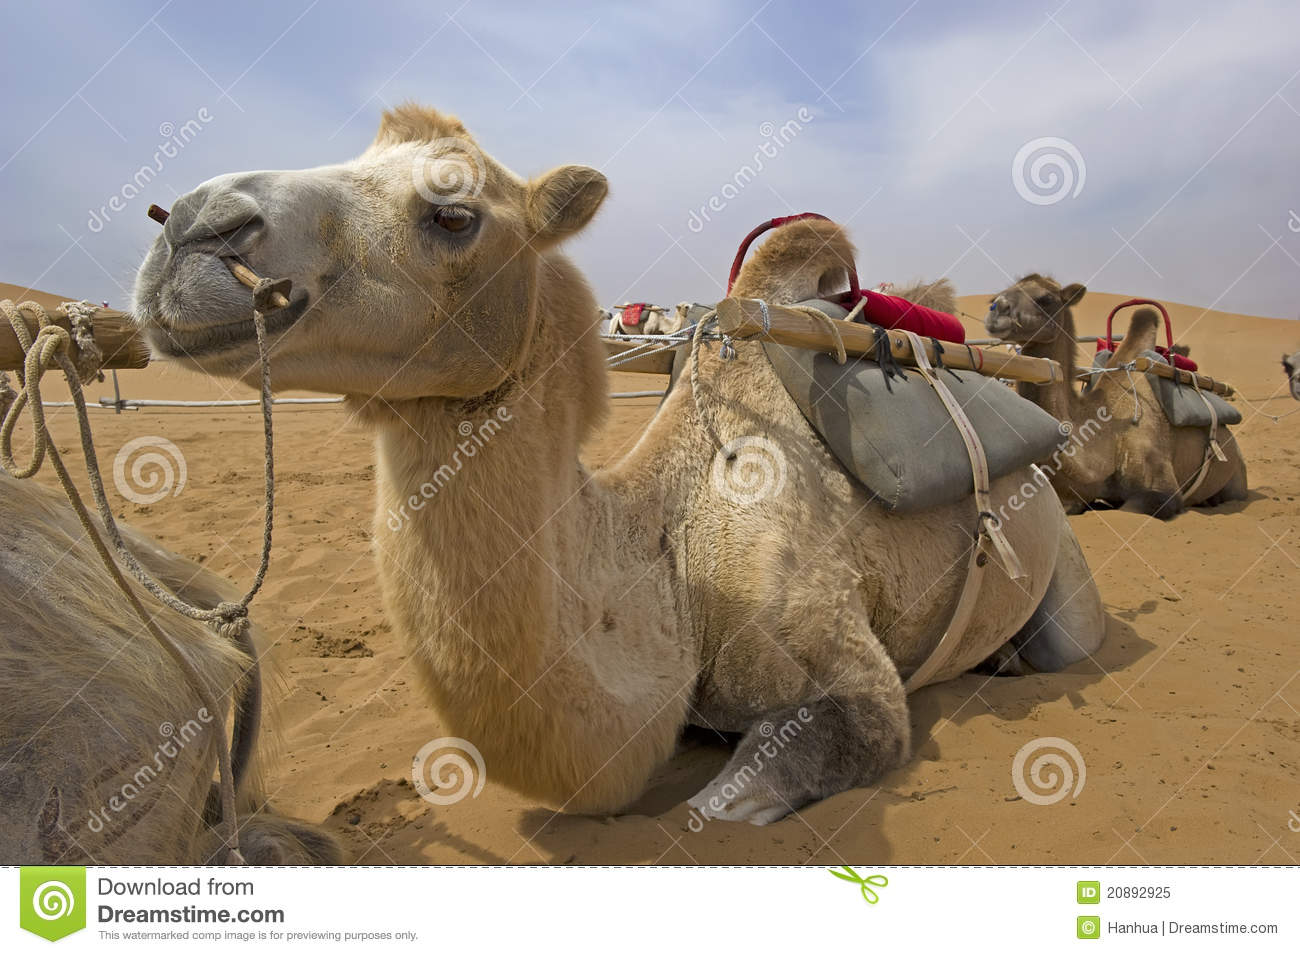 140 Words Essay for kids on the camel